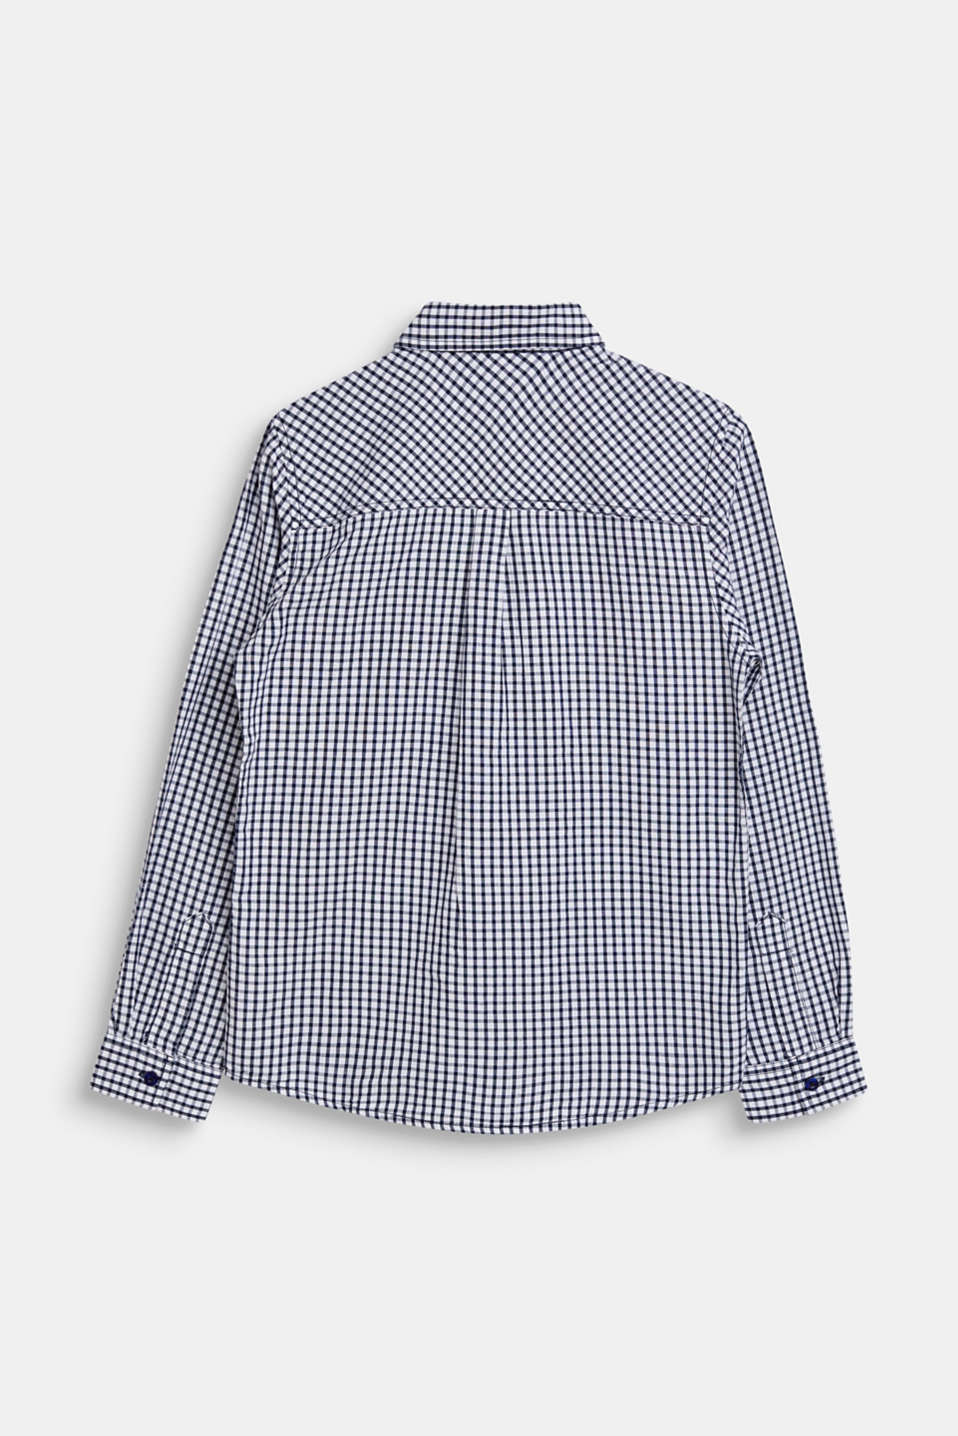 Shirt with a check pattern, 100% cotton, LCNAVY, detail image number 1